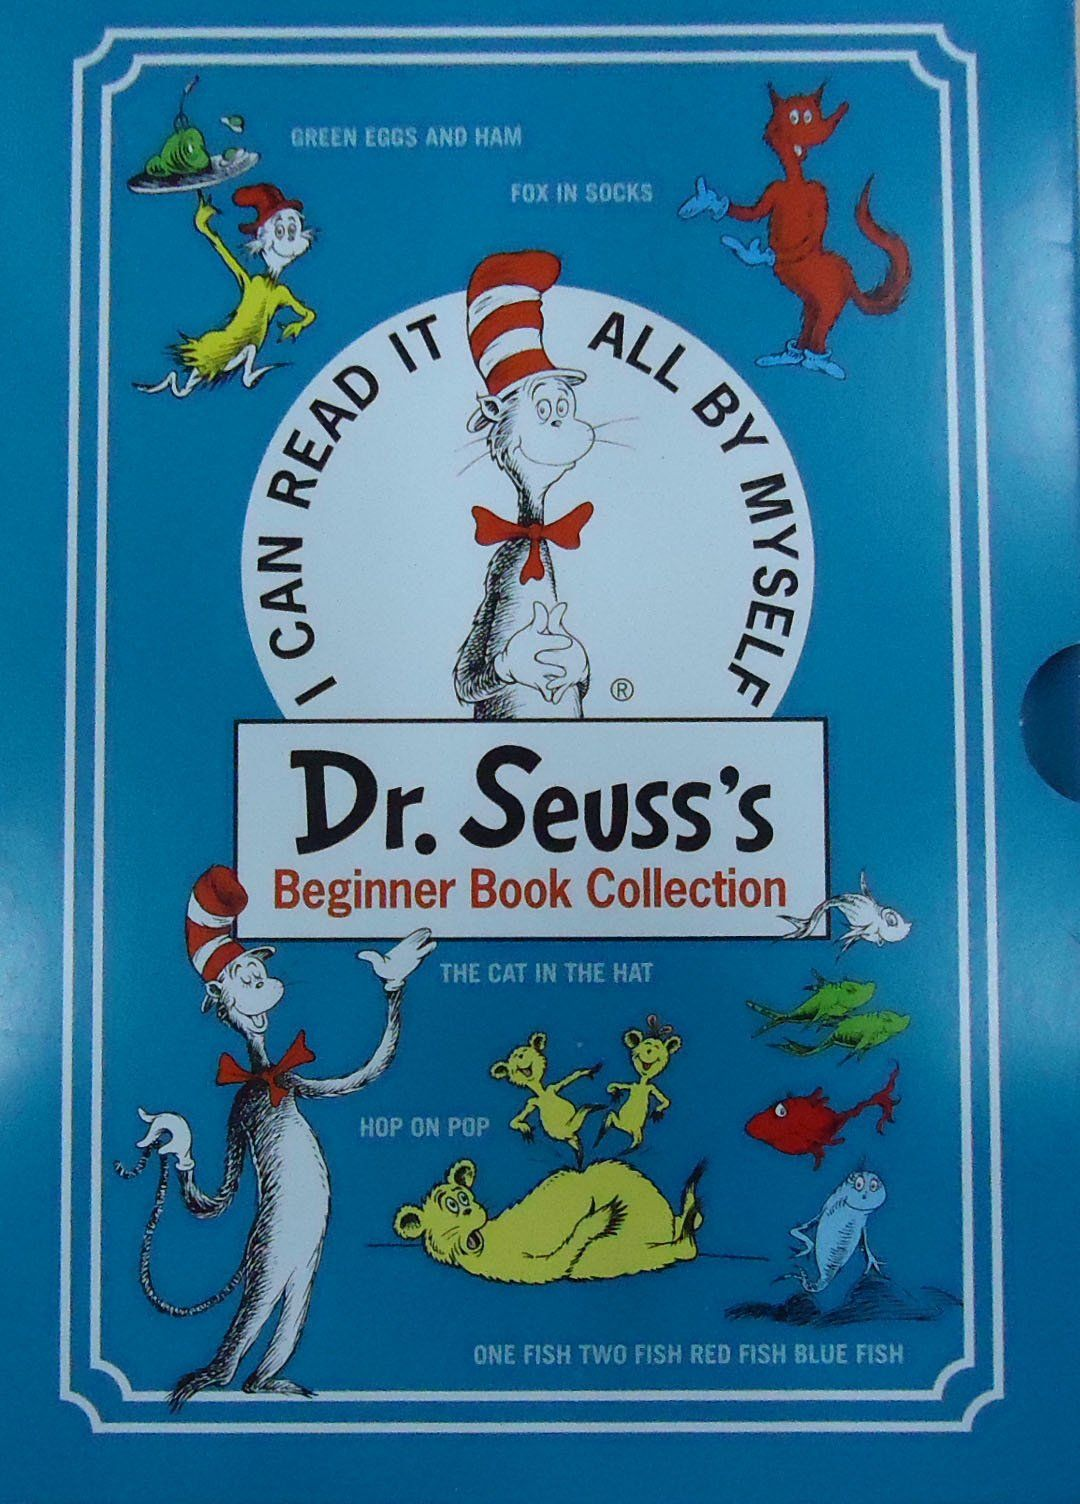 Brilliant Beginner Book Collection One Fish Two Dr Seuss Beginner Book Collection Pdf Dr Seuss S Beginner Book Collection Hop On Fox Beginner Book Collection One Fish Two Eggs baby Dr Seusss Beginner Book Collection